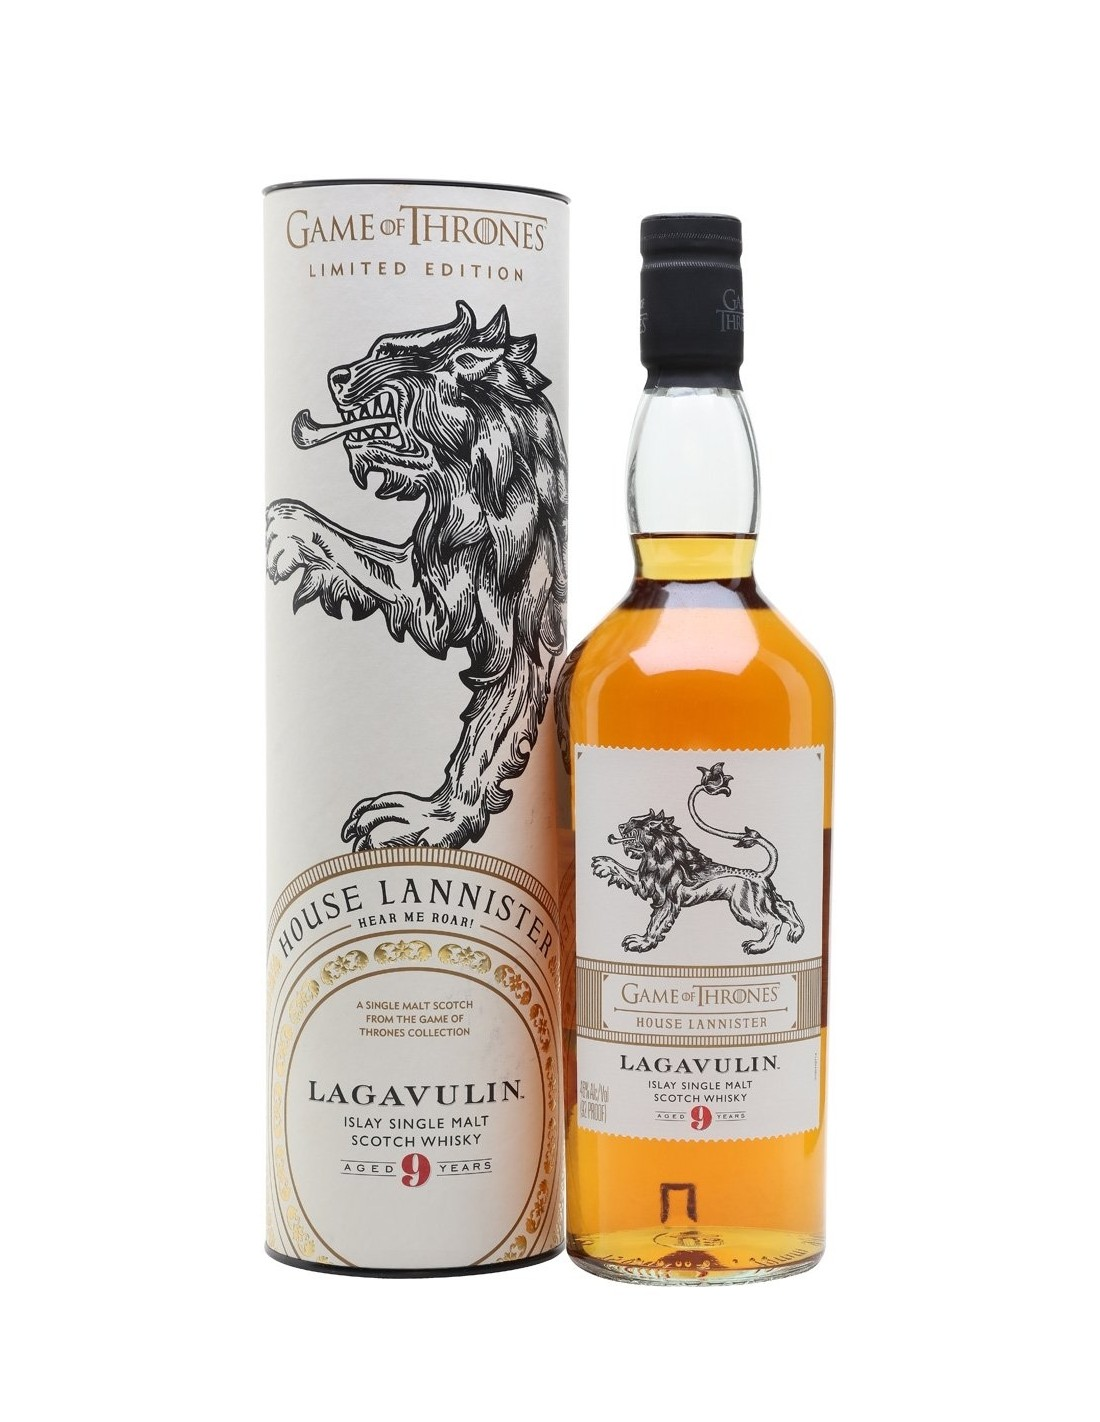 Whisky Lagavulin Game Of Thrones, 9 ani, 46% alc., 0.7L, Scotia